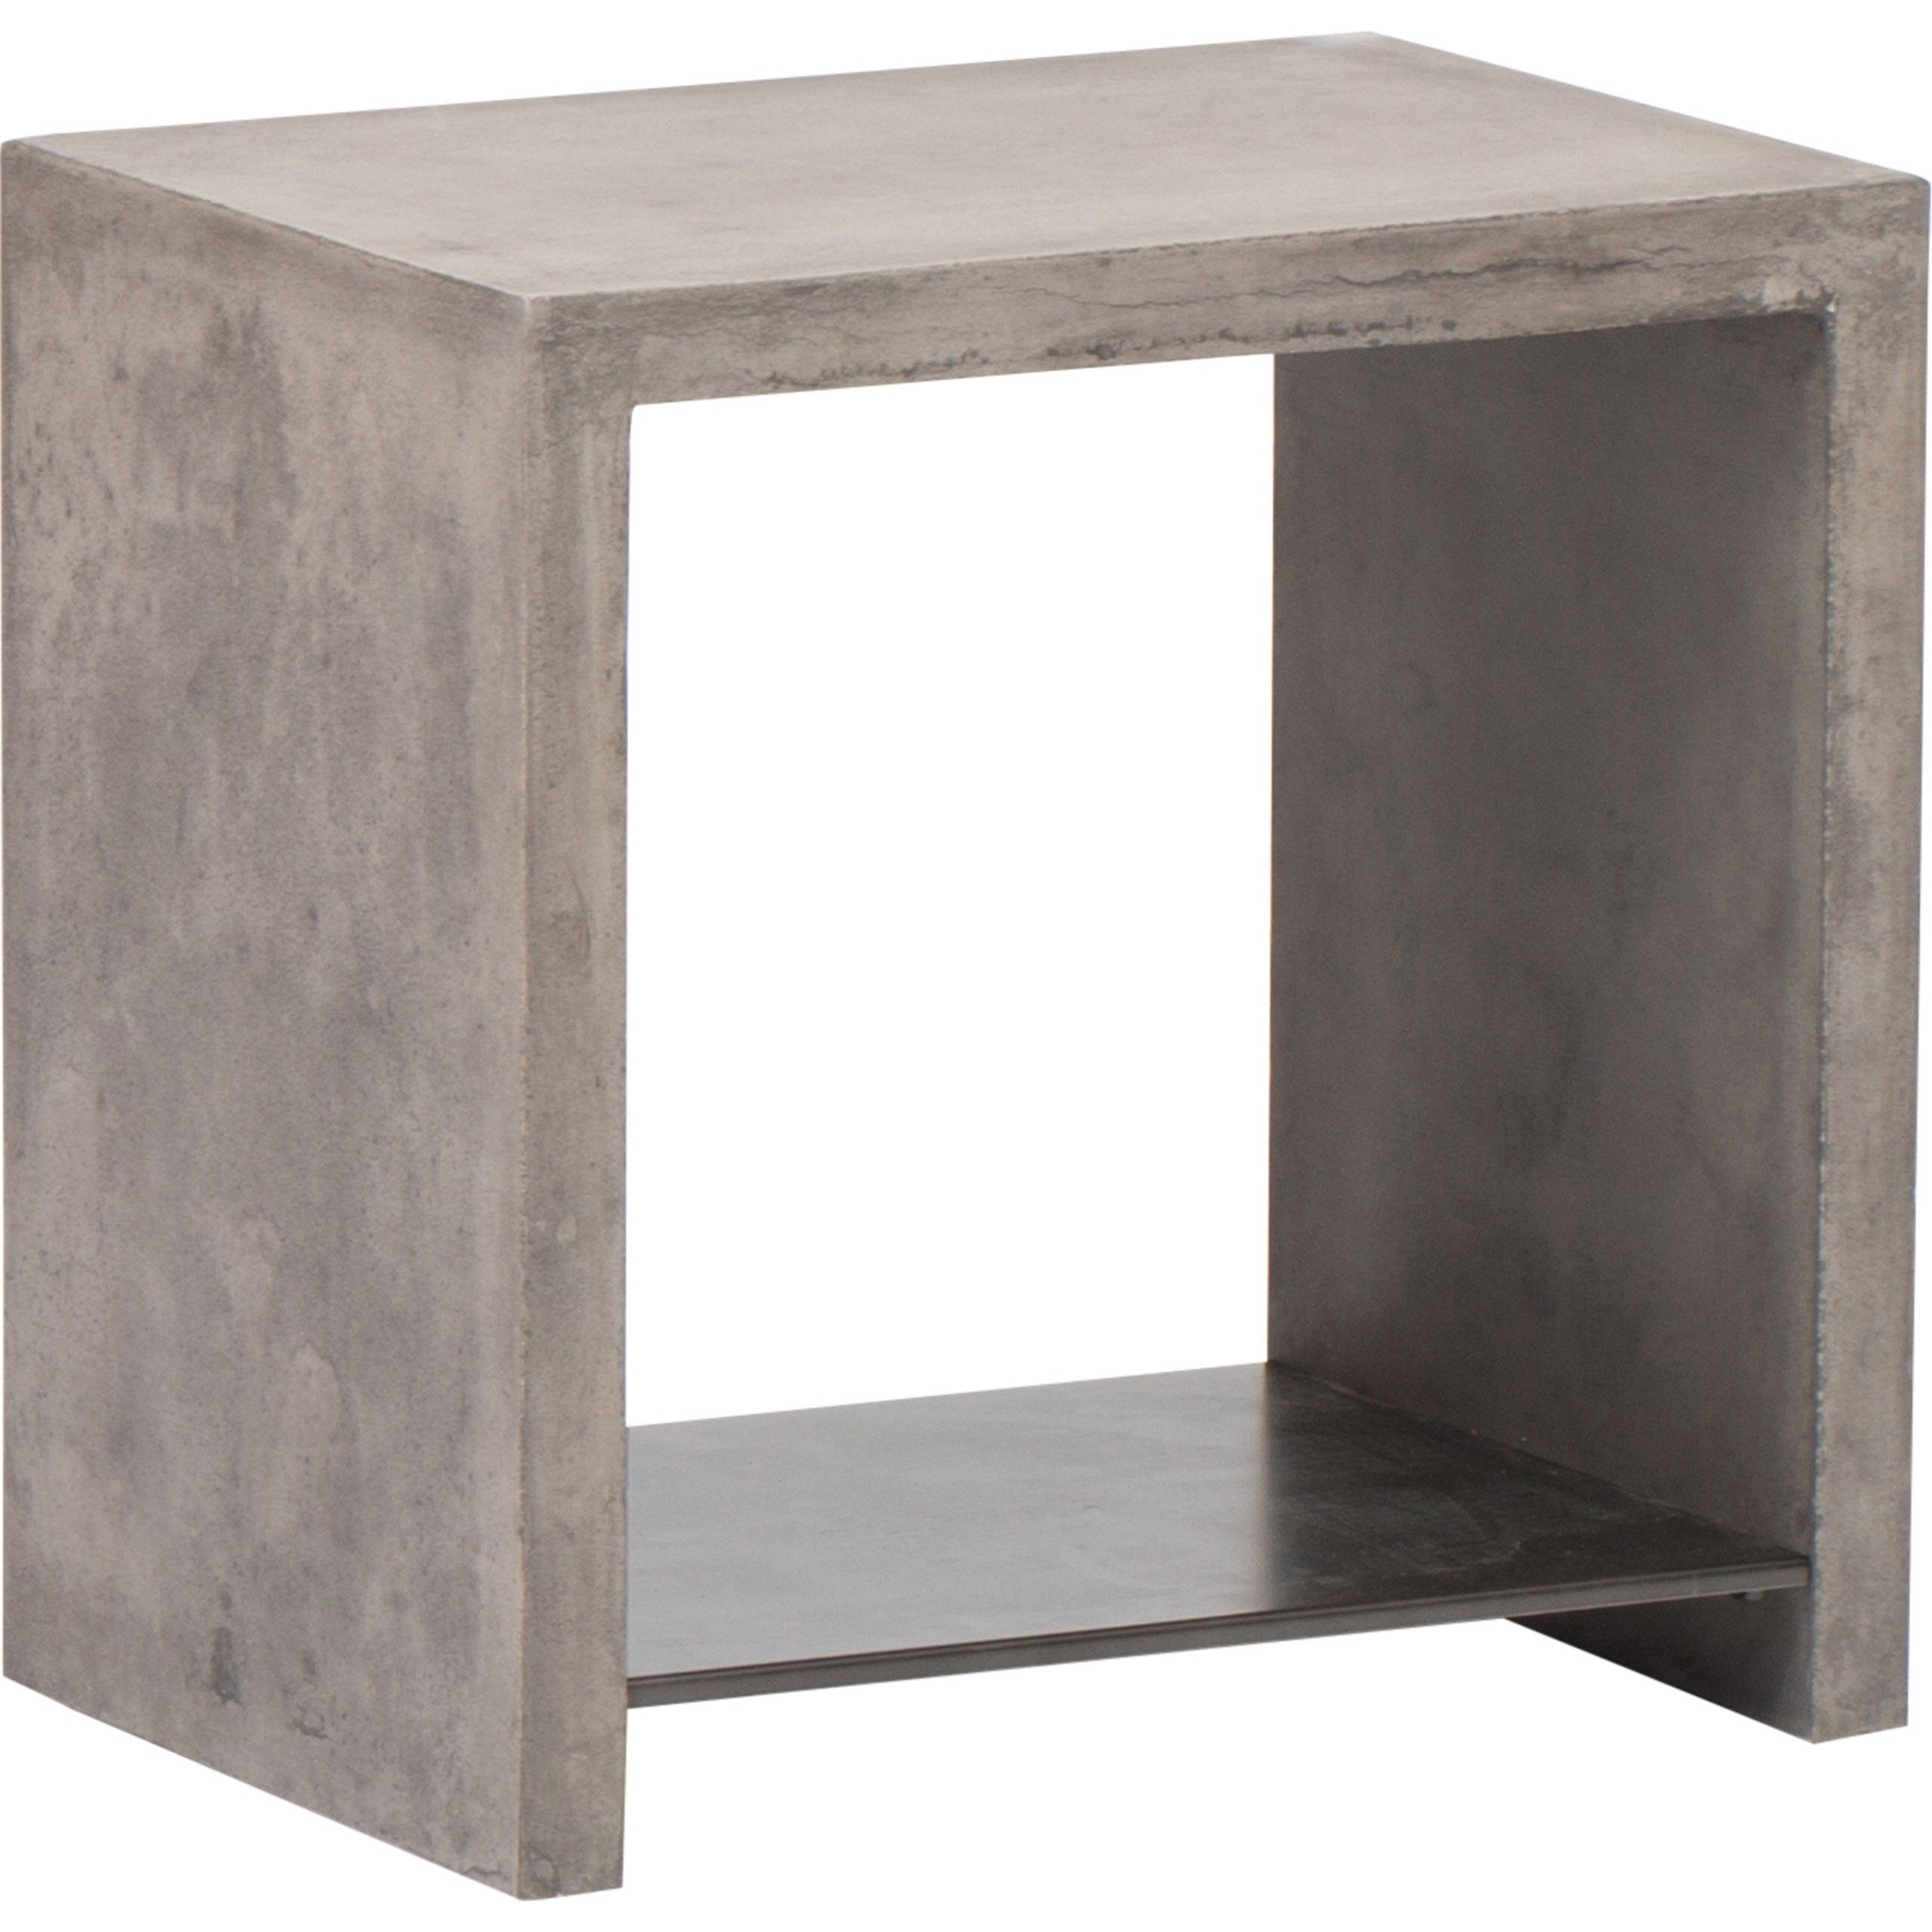 Hugo End Table End Tables Accent Tables Furniture End Tables Outdoor Accent Table Accent Table